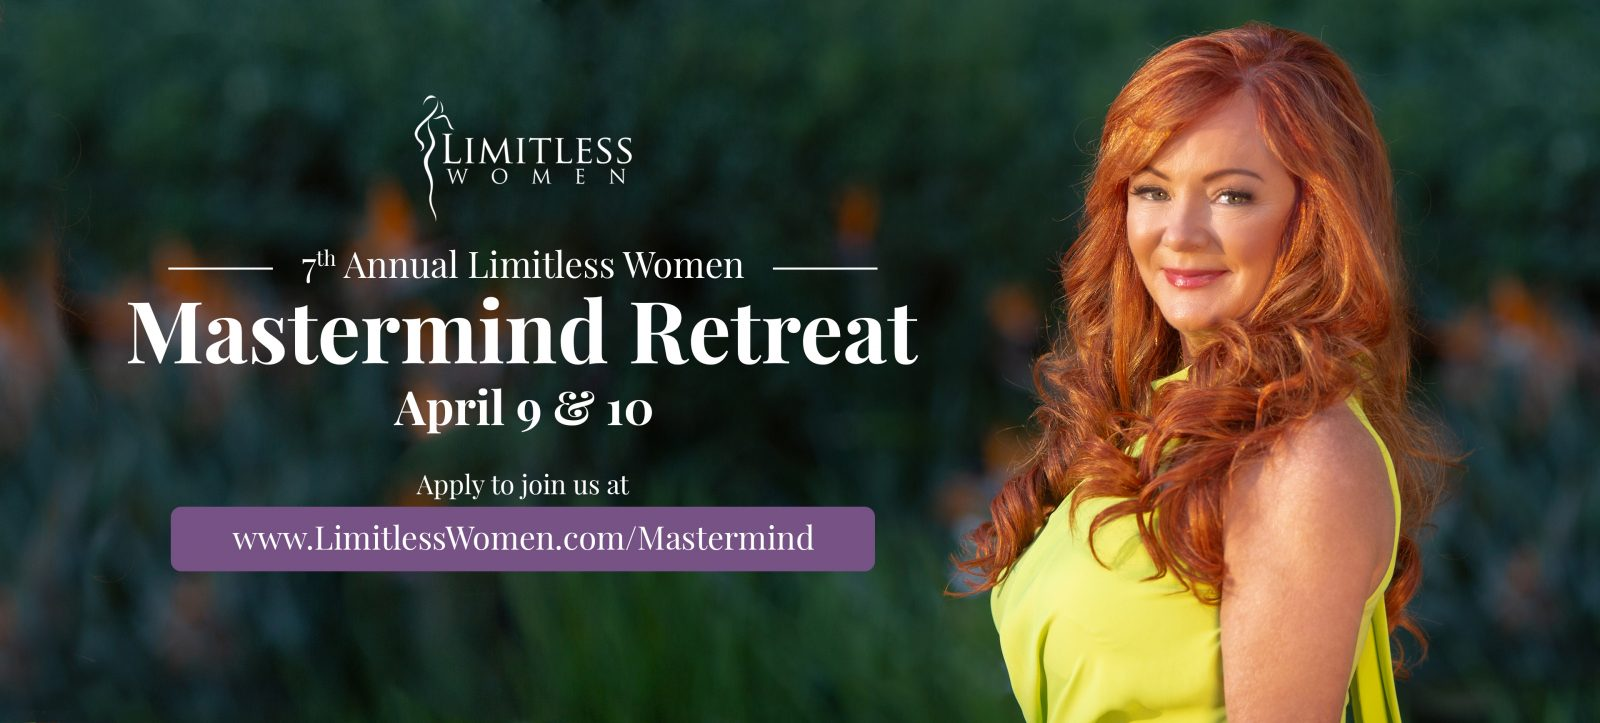 Mastermind Retreat - April 9 & 10